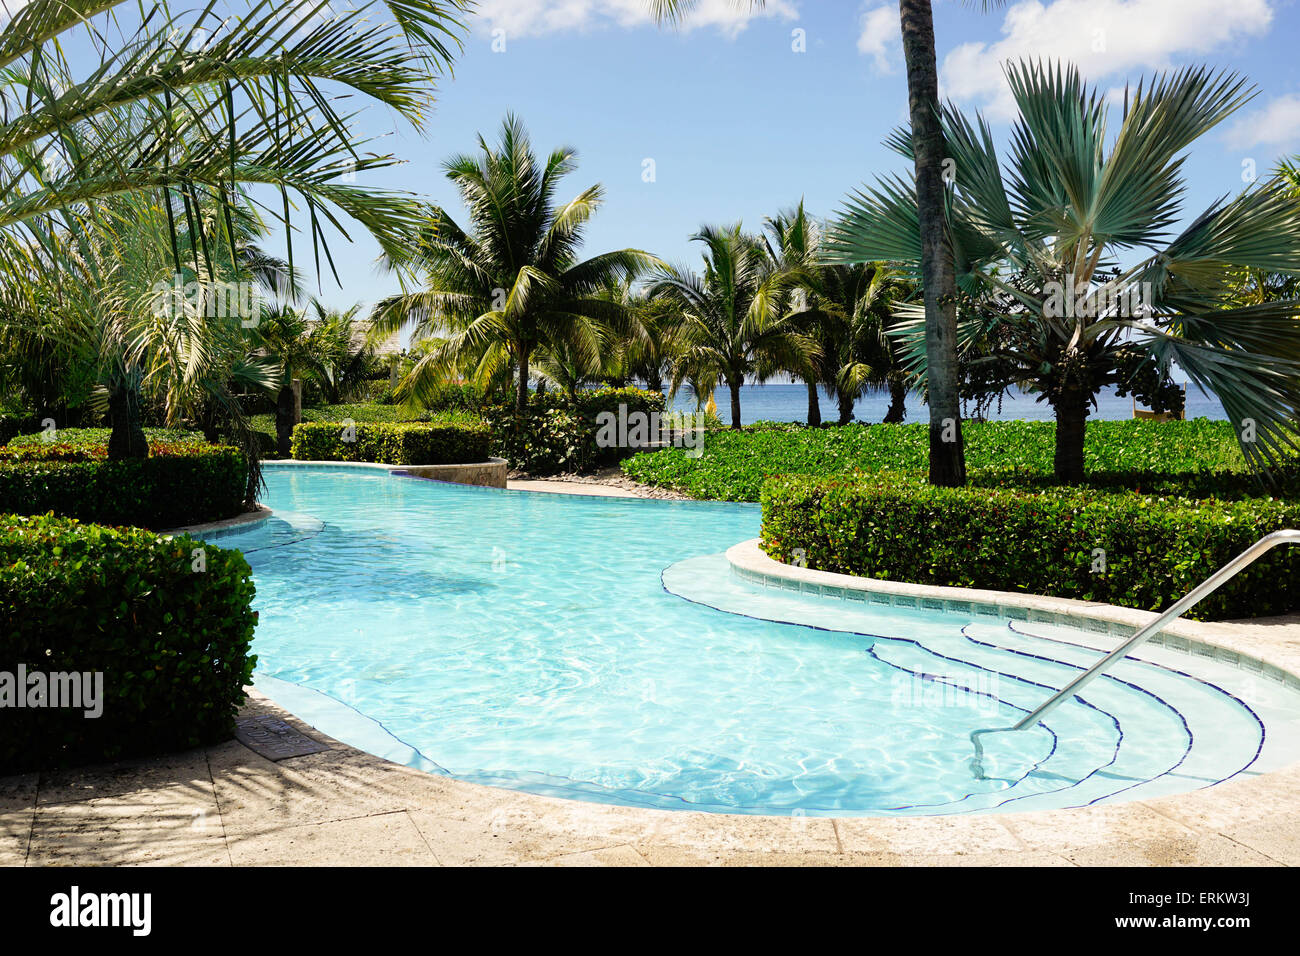 Four Seasons Hotel, Nevis, St. Kitts and Nevis, Leeward Islands, West Indies, Caribbean, Central America Stock Photo